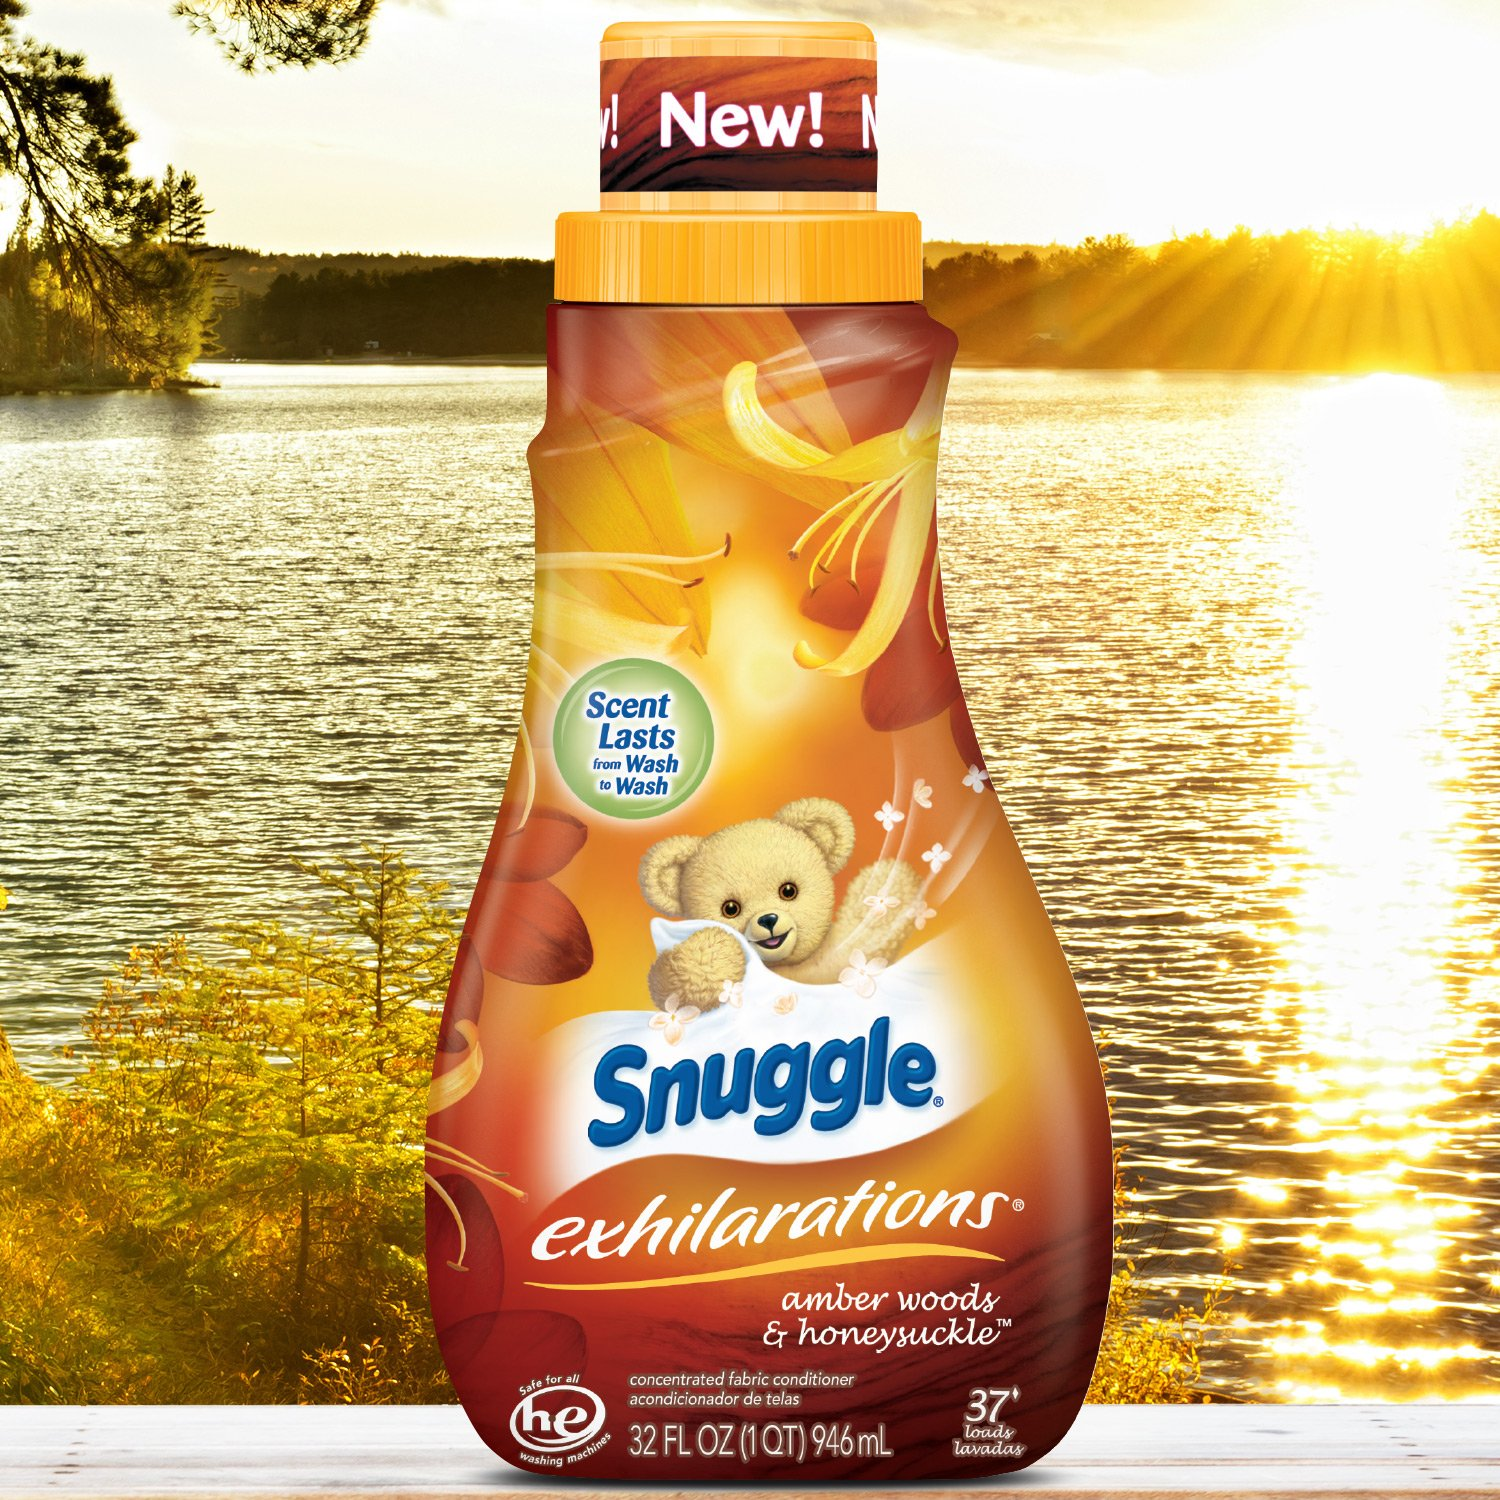 Snuggle Exhilarations Liquid Fabric Softener, Amber Woods & Honeysuckle, 32 Fluid Ounces (Pack of 9) by Snuggle (Image #5)